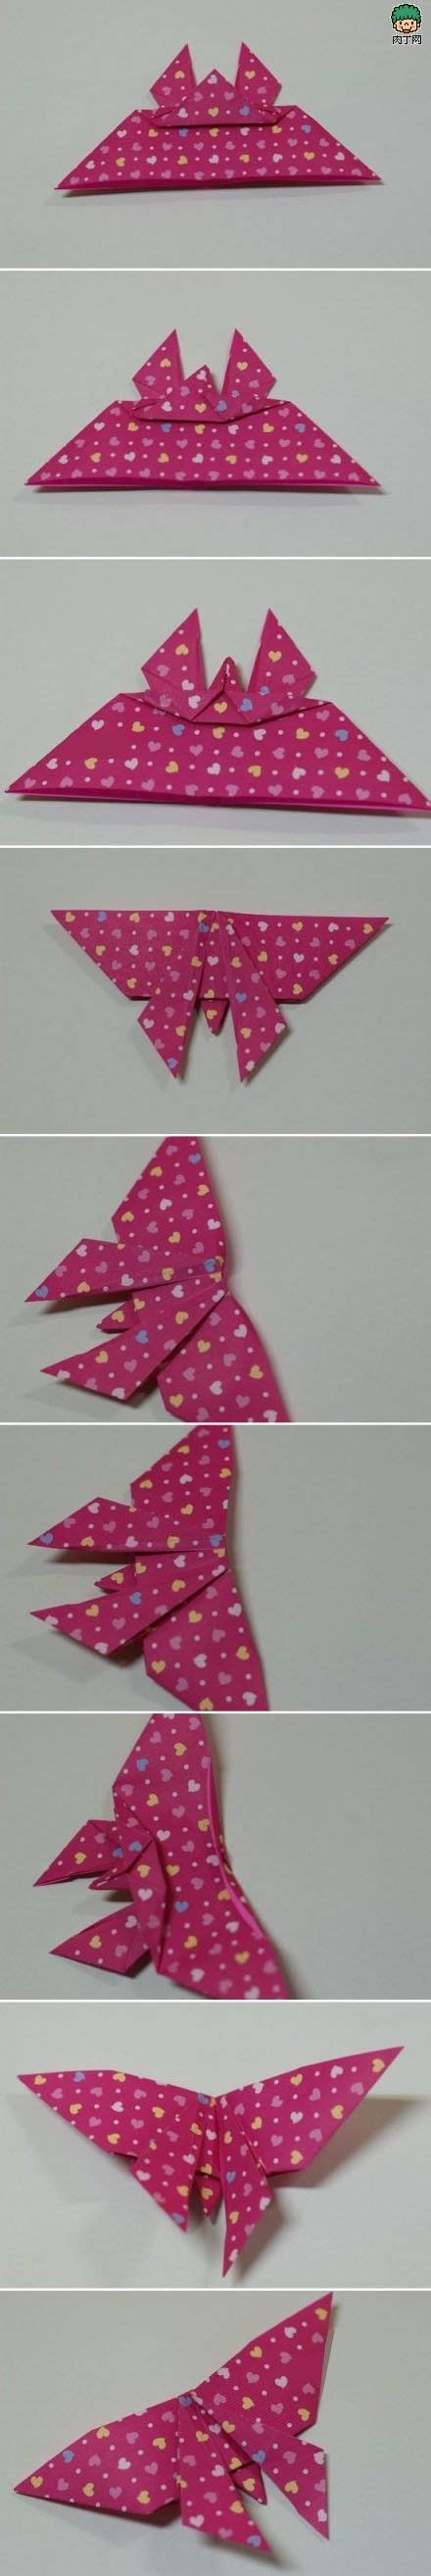 tutorial for origami butterfly 86 best images about origami tutorial on pinterest lucky